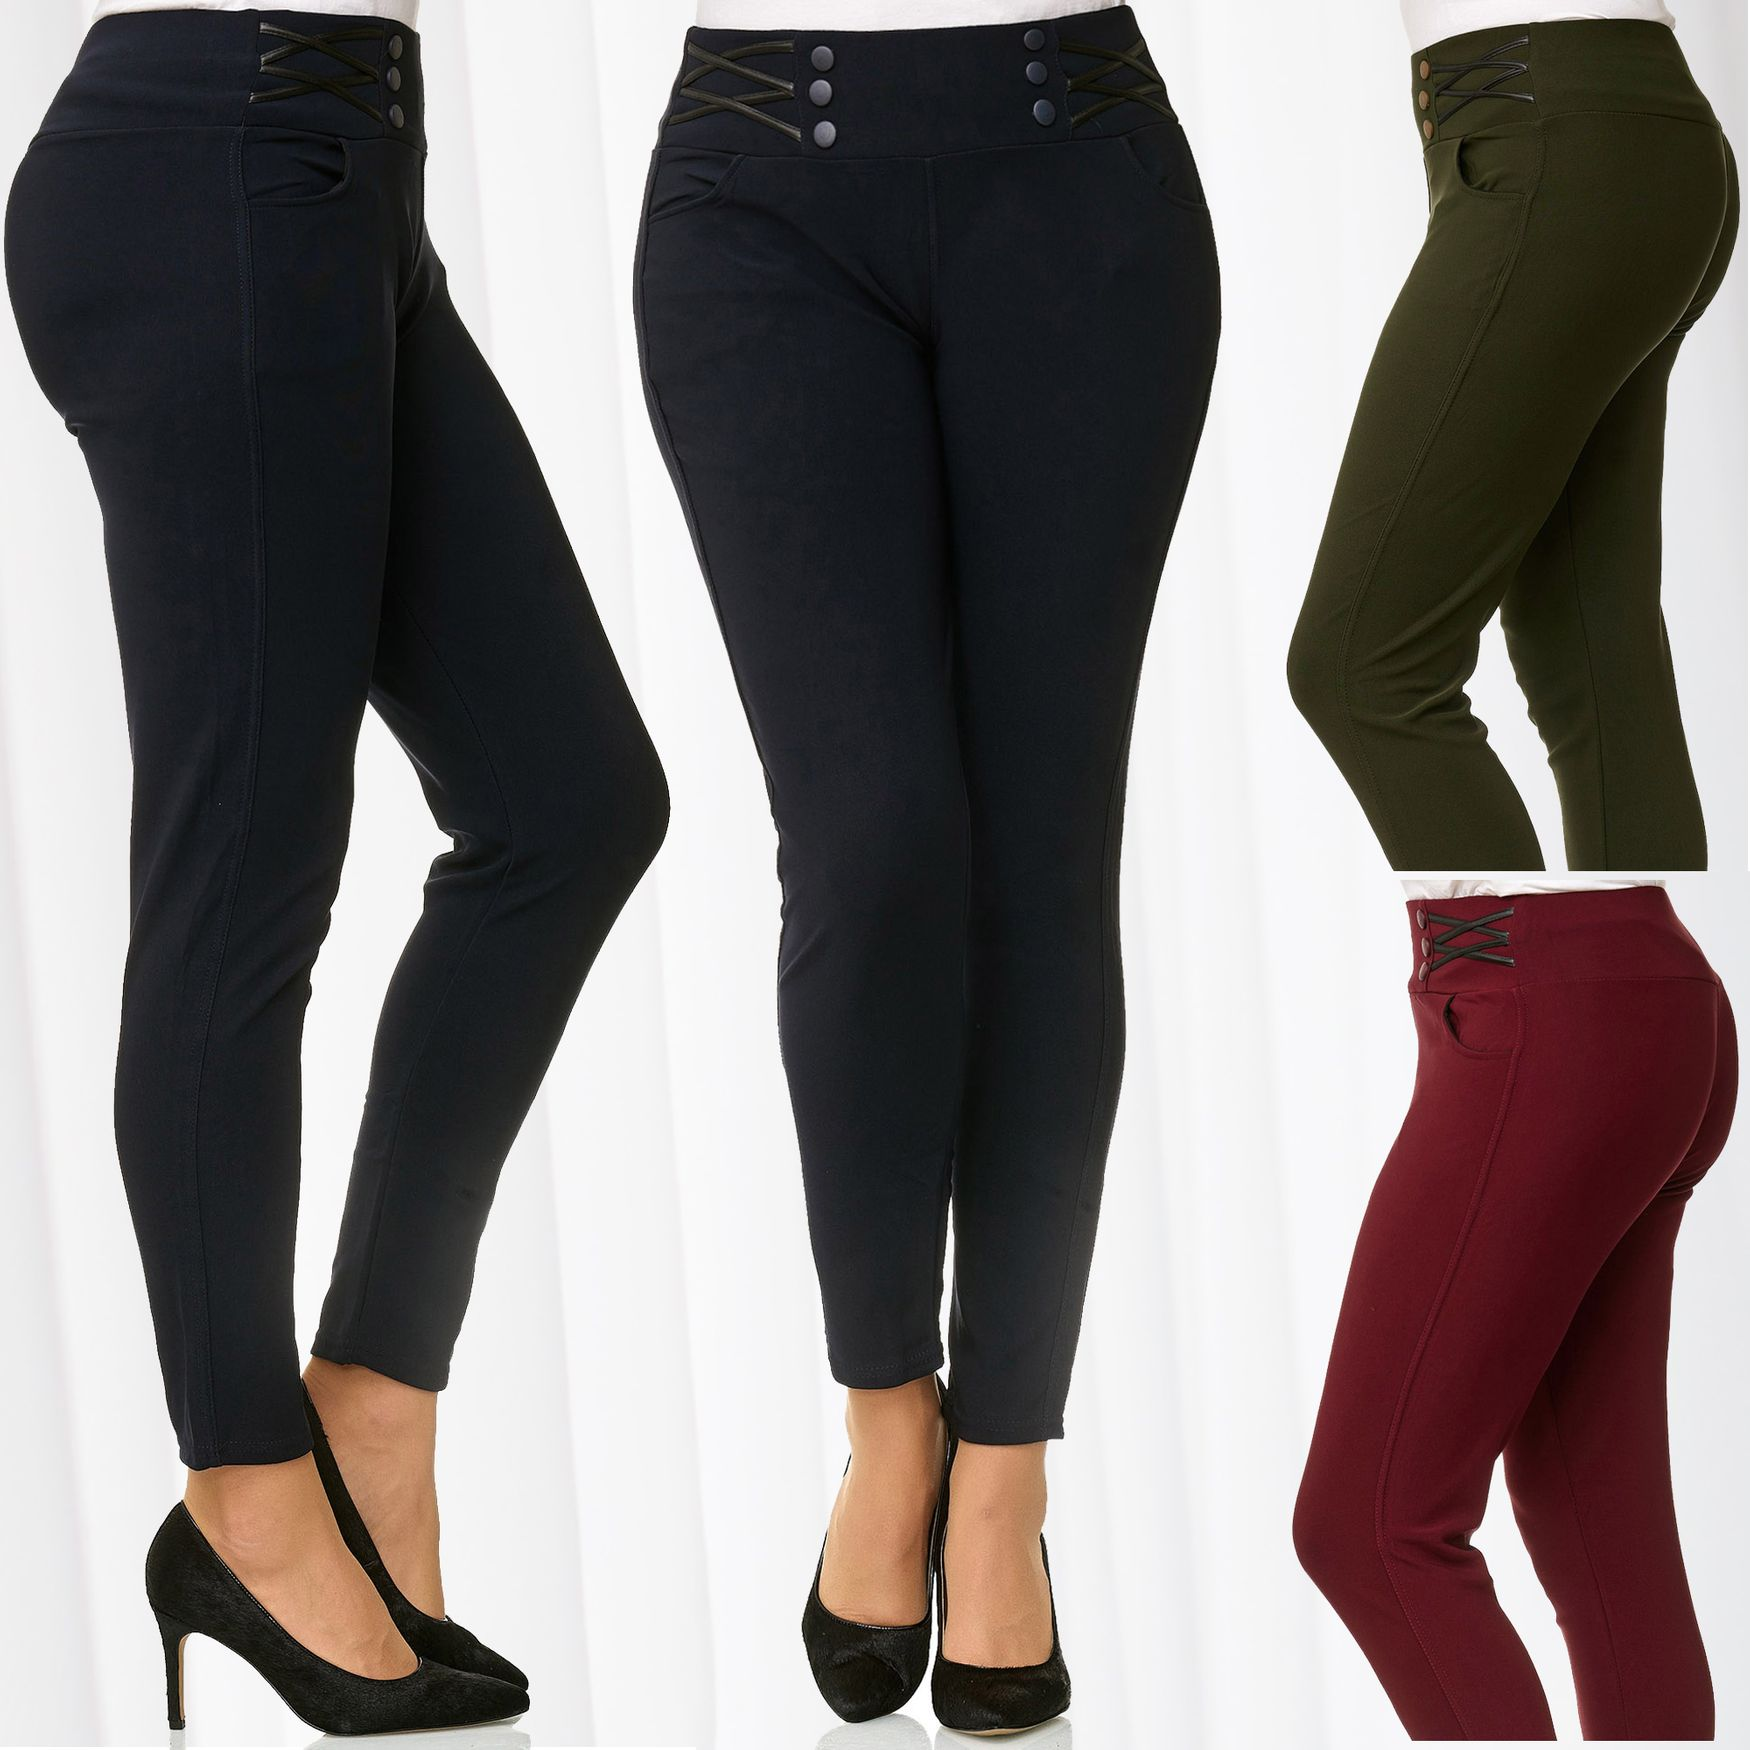 Damen Hose Stretch Stoff Übergröße Leggings Treggings Jeggings Skinny Plus Size